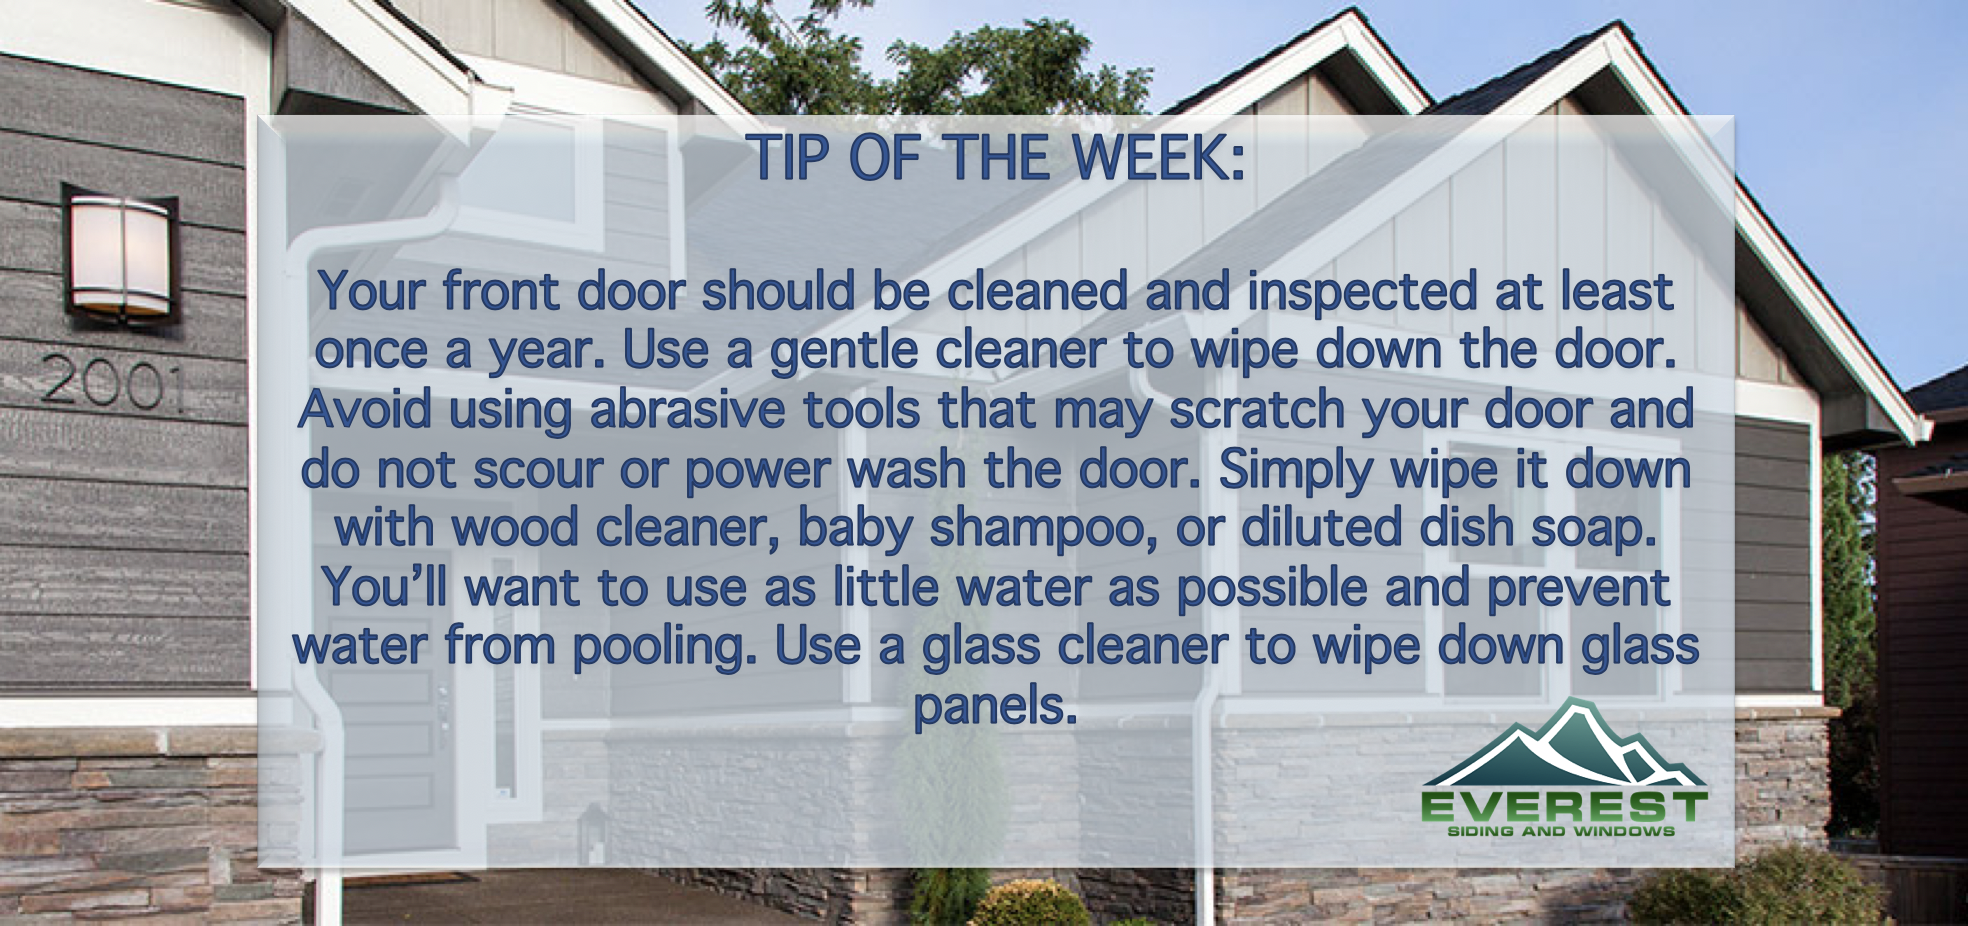 Useful Tip About Cleaning Your Front Door Houston Cypress Texas Hardieplank Lpsmartside Siding Windows Roof Front Door Roofing Lp Smart Siding